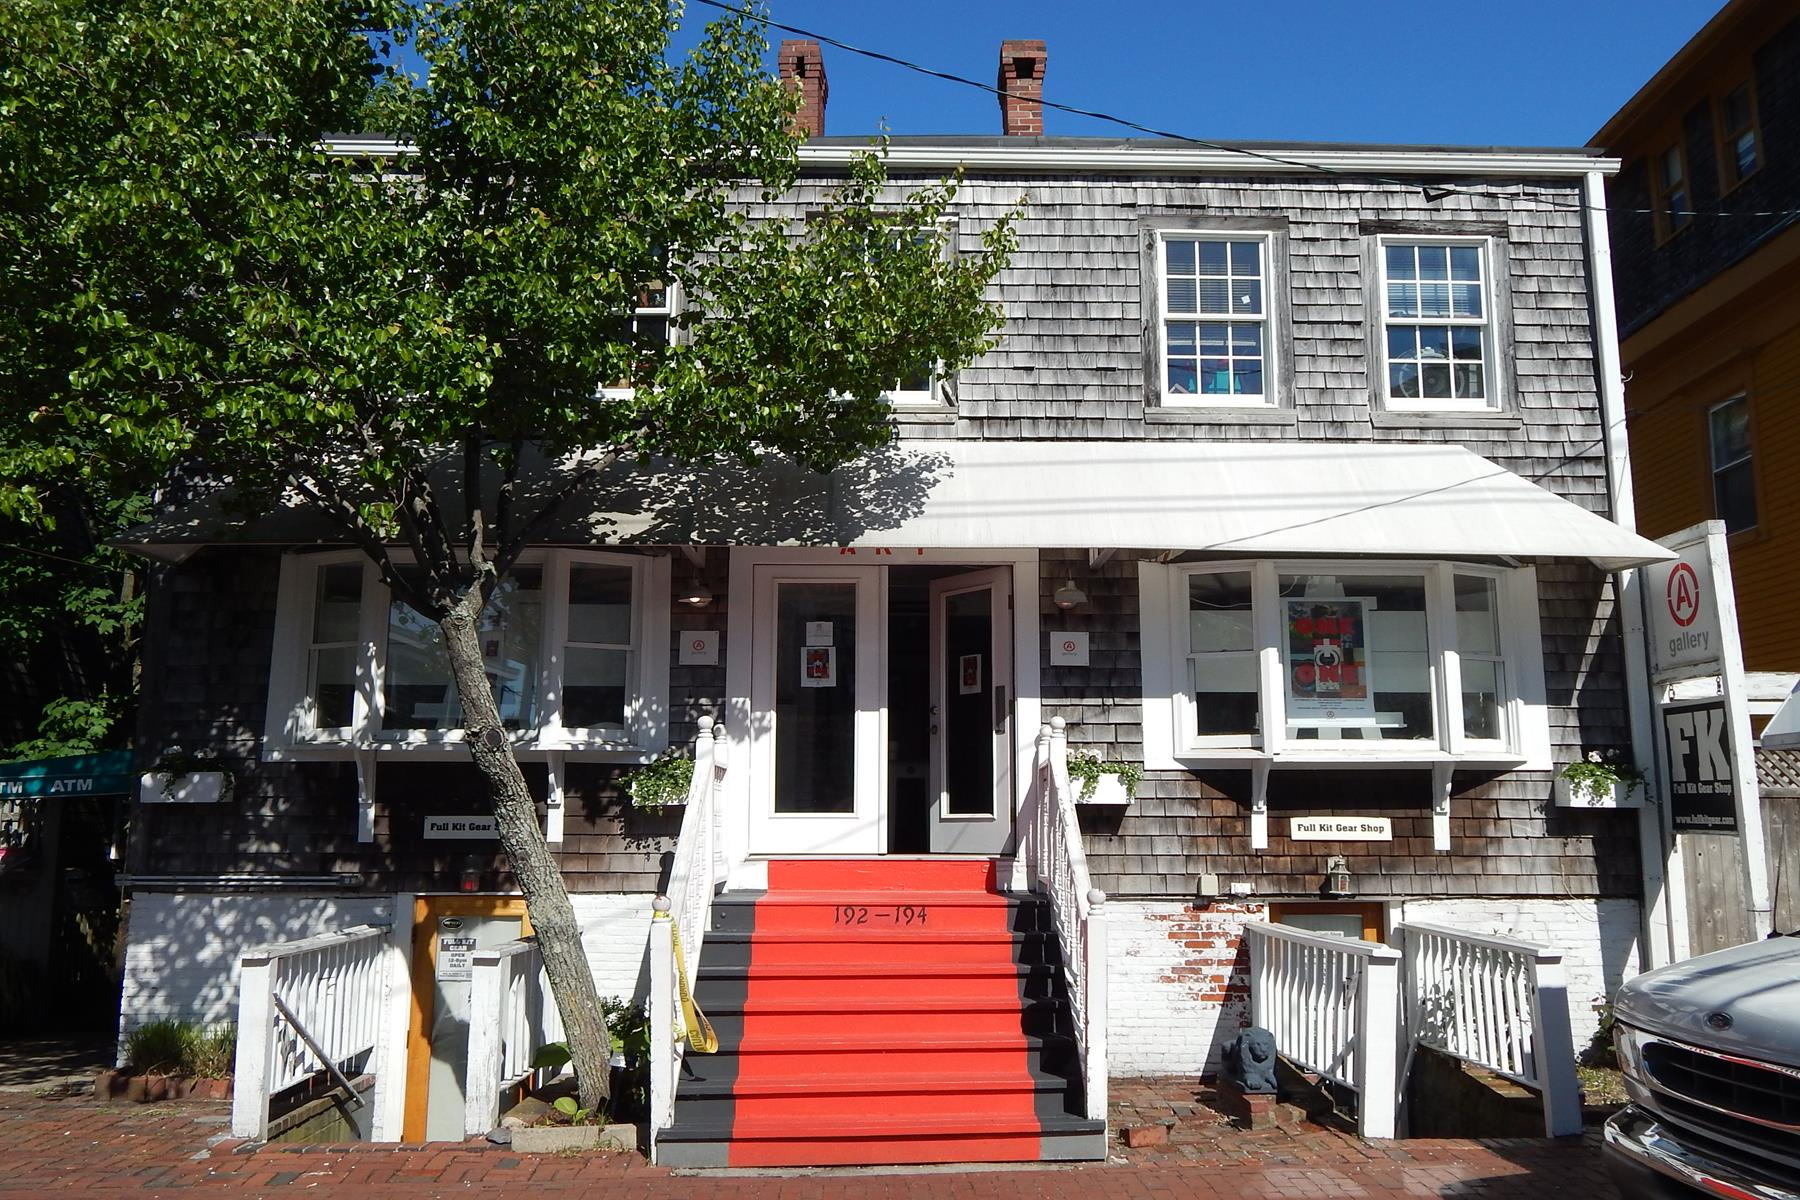 per Vendita alle ore Downtown apartments and retail space 192-194 Commercial Street Provincetown, Massachusetts 02657 Stati Uniti